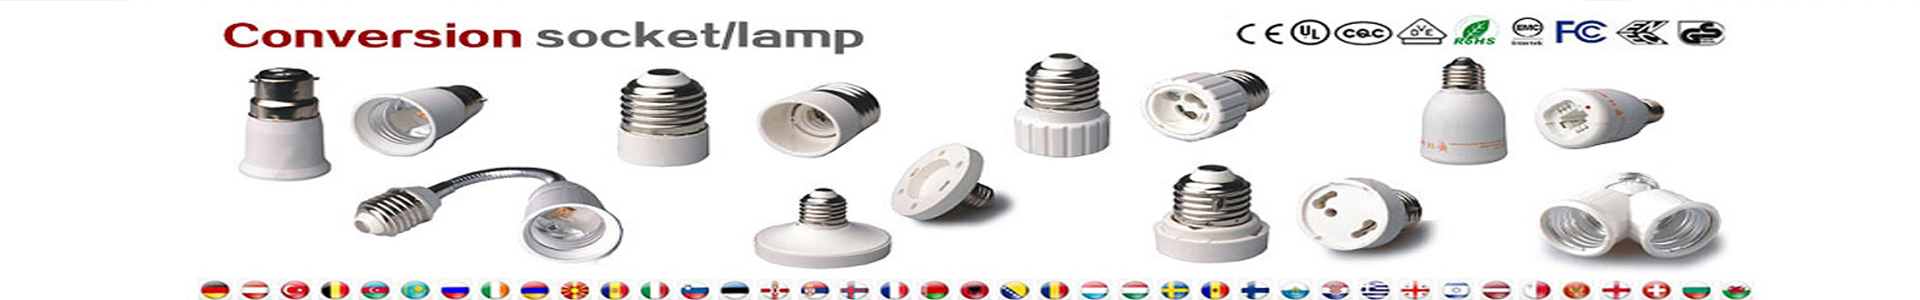 Light bulb socket adapter